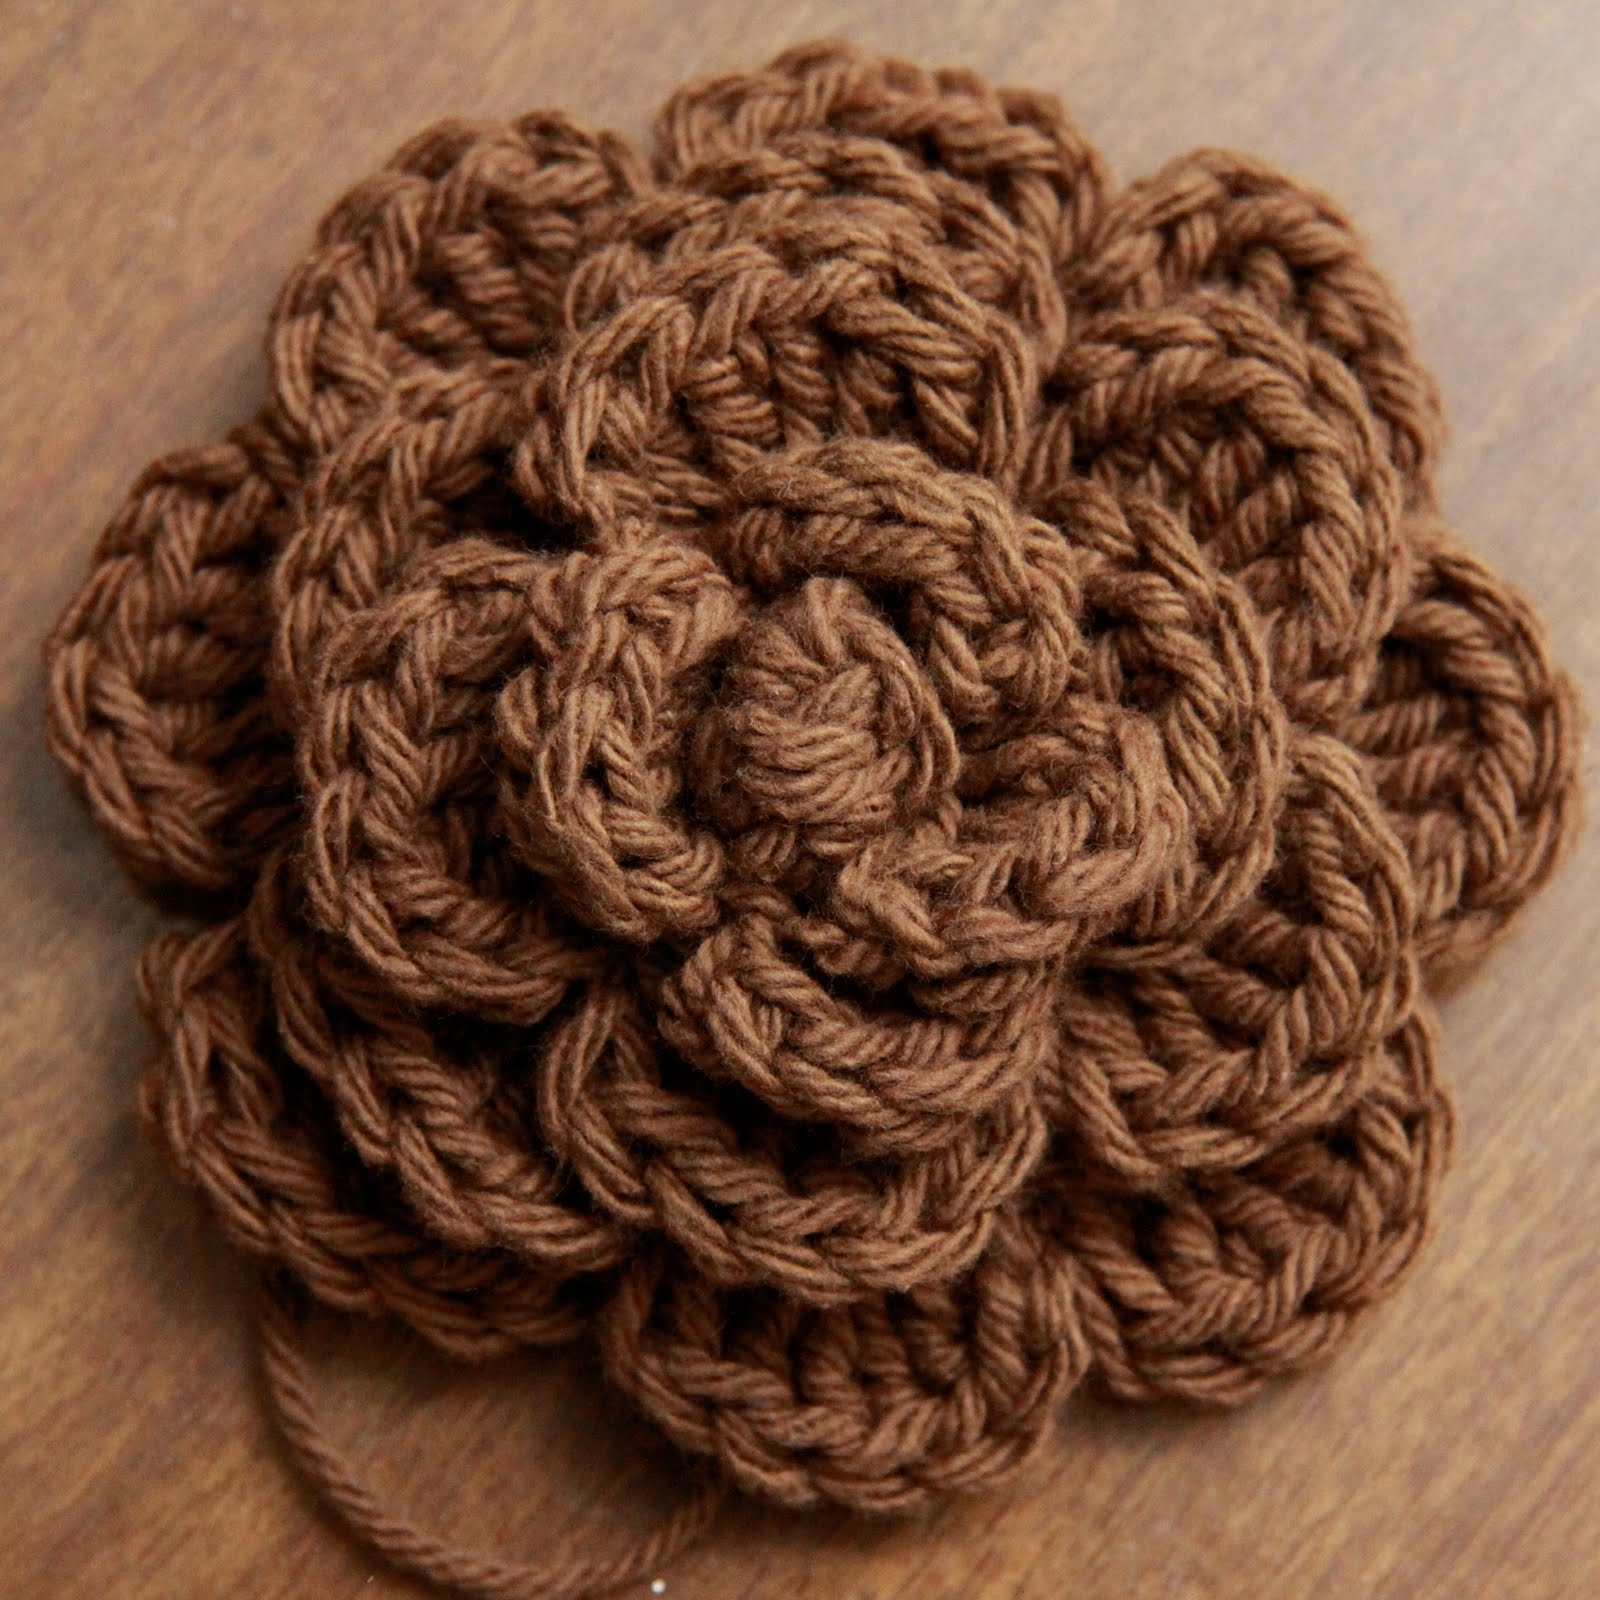 Crochet Rose Hair Clip Pattern : Crazy 4 Crafting: Crochet Hair Accessories